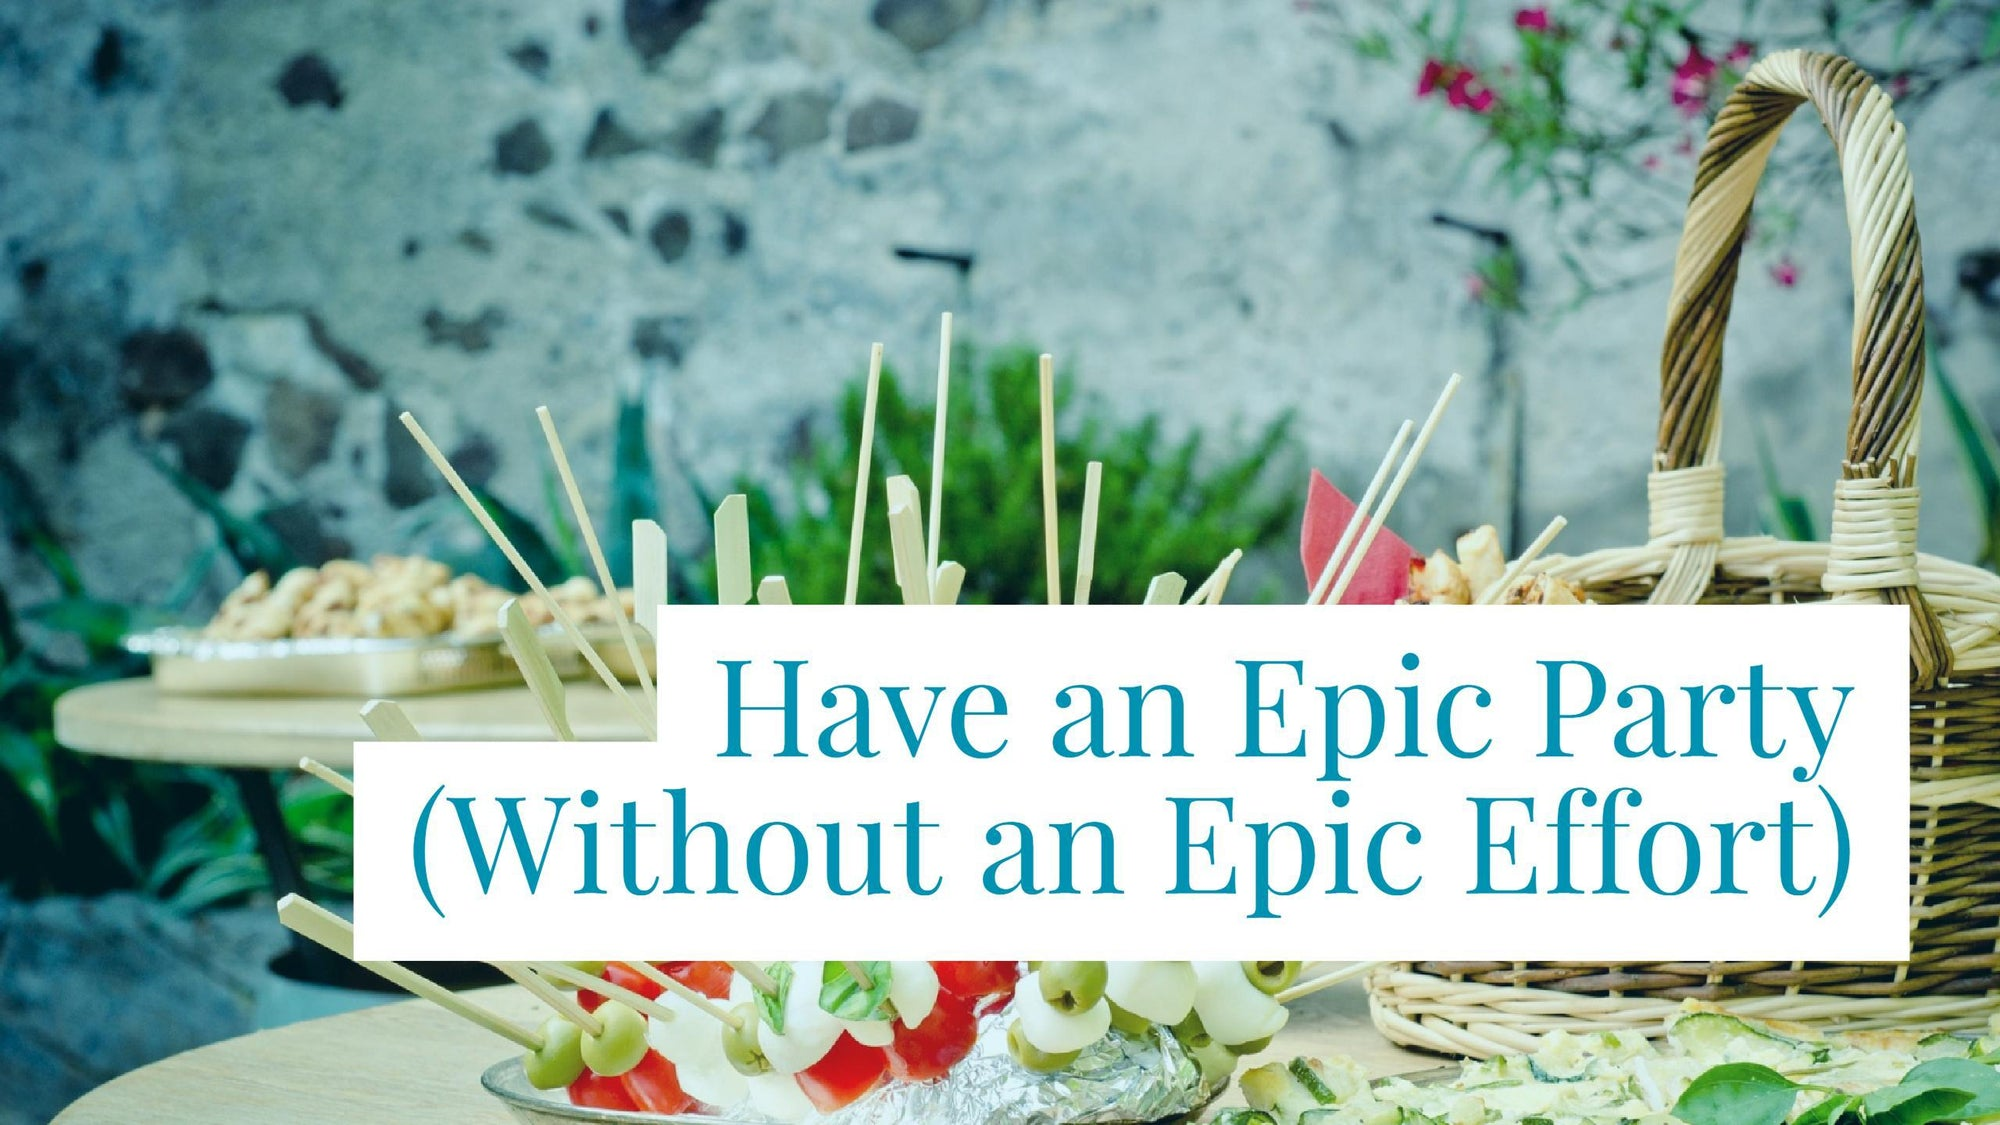 How to Host an Epic Party Without an Epic Effort